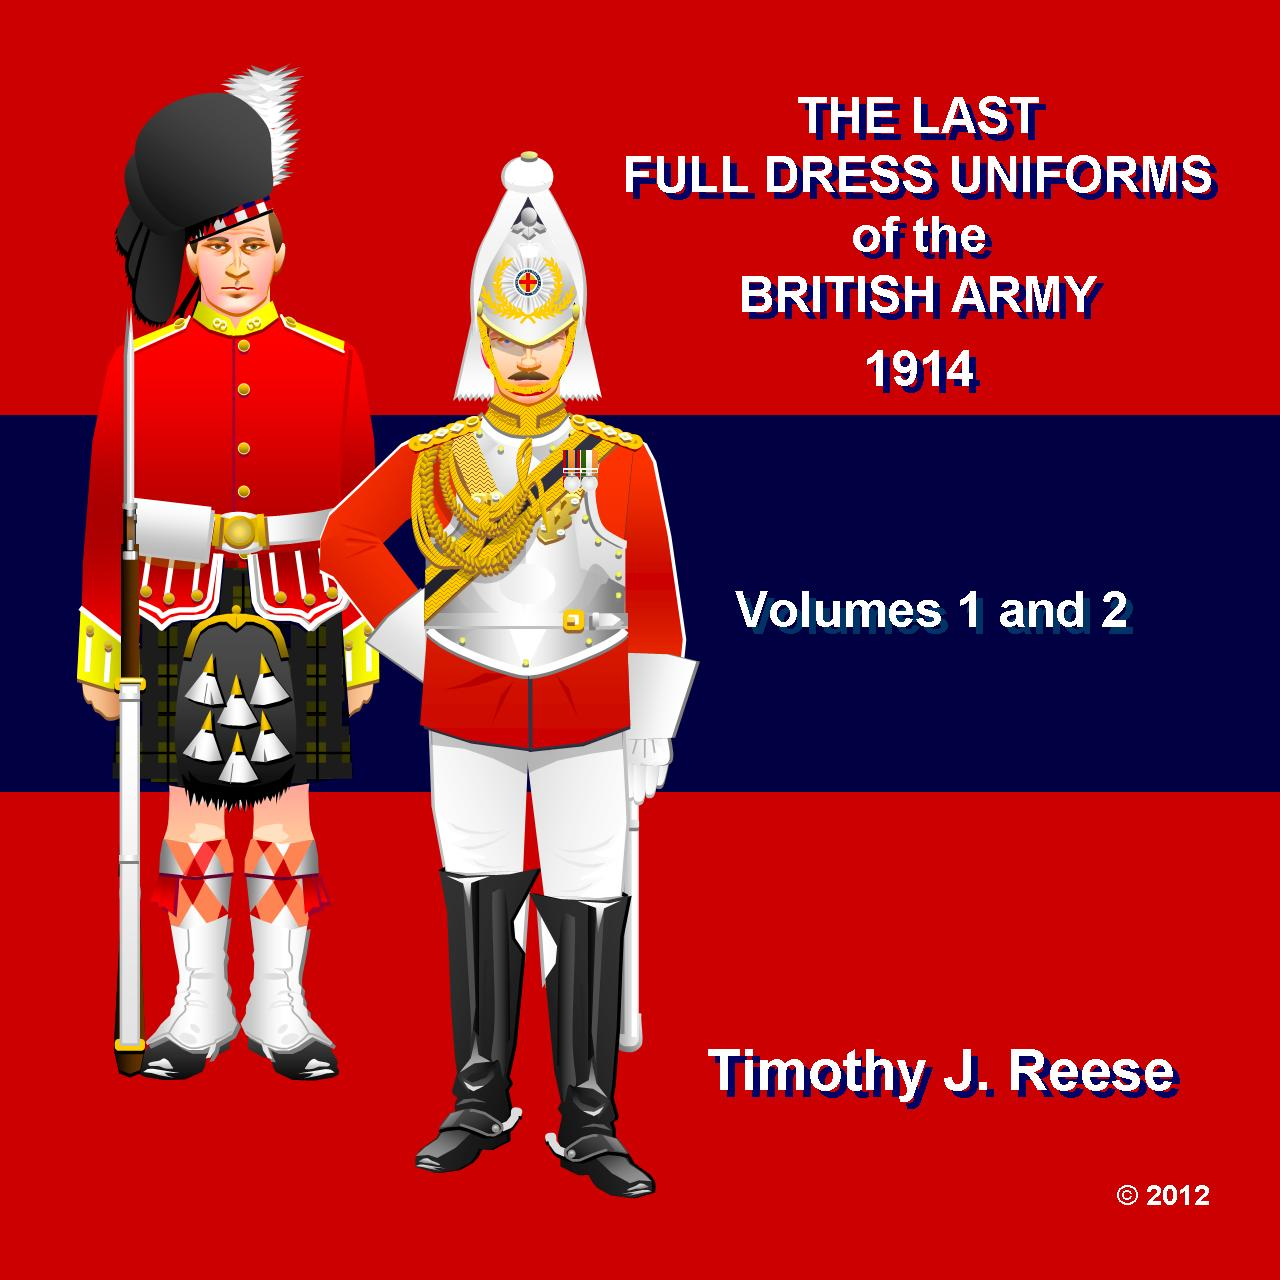 SAMPLE PLATE: The Last Full Dress Uniforms of the British Army, 1914, Valumes 1 and 2